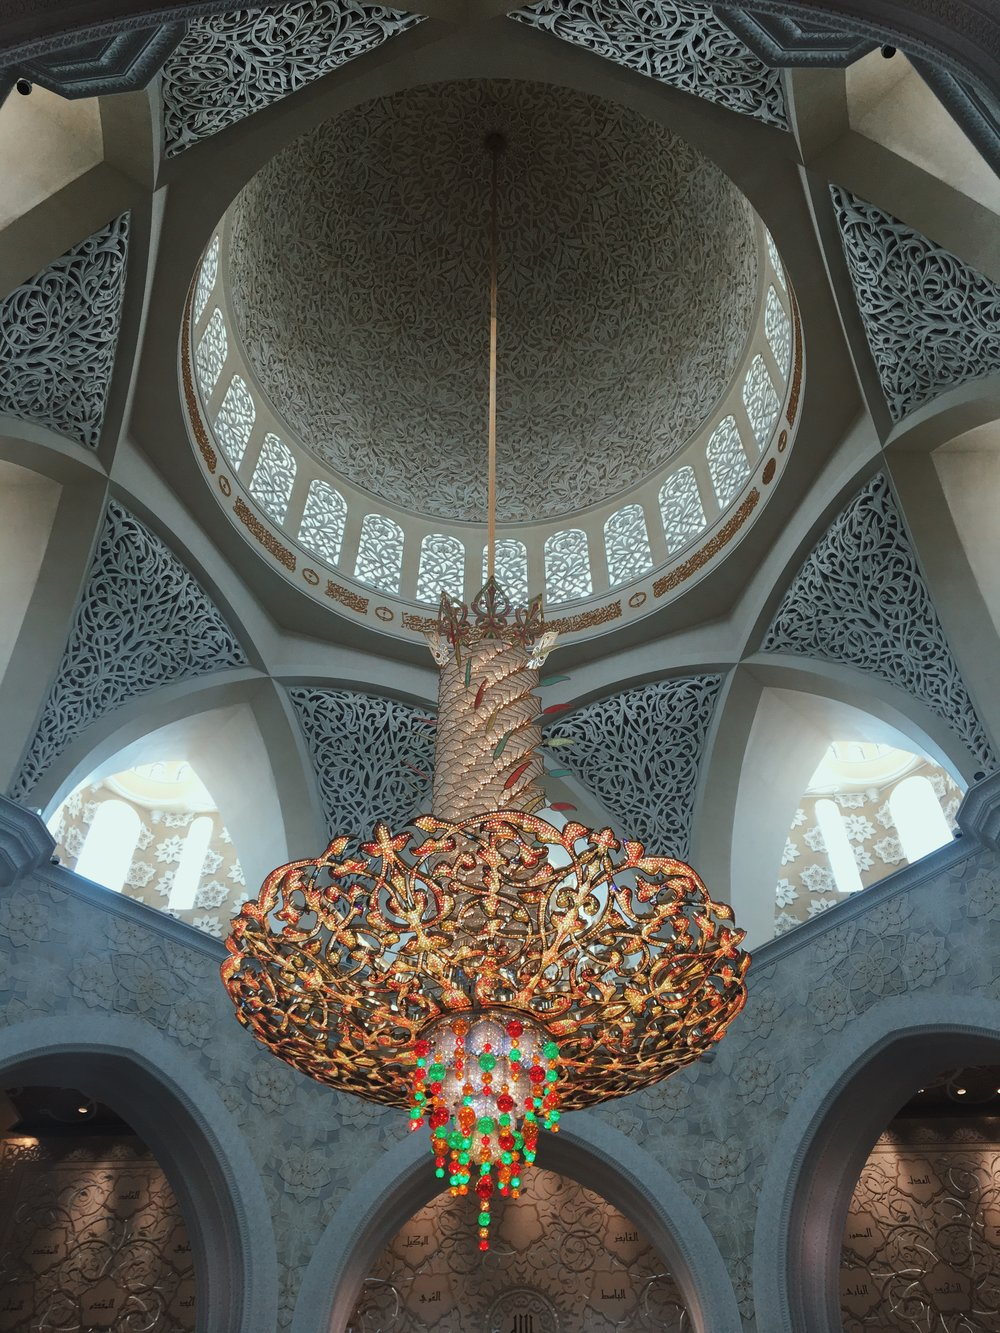 Inside the Grand Mosque